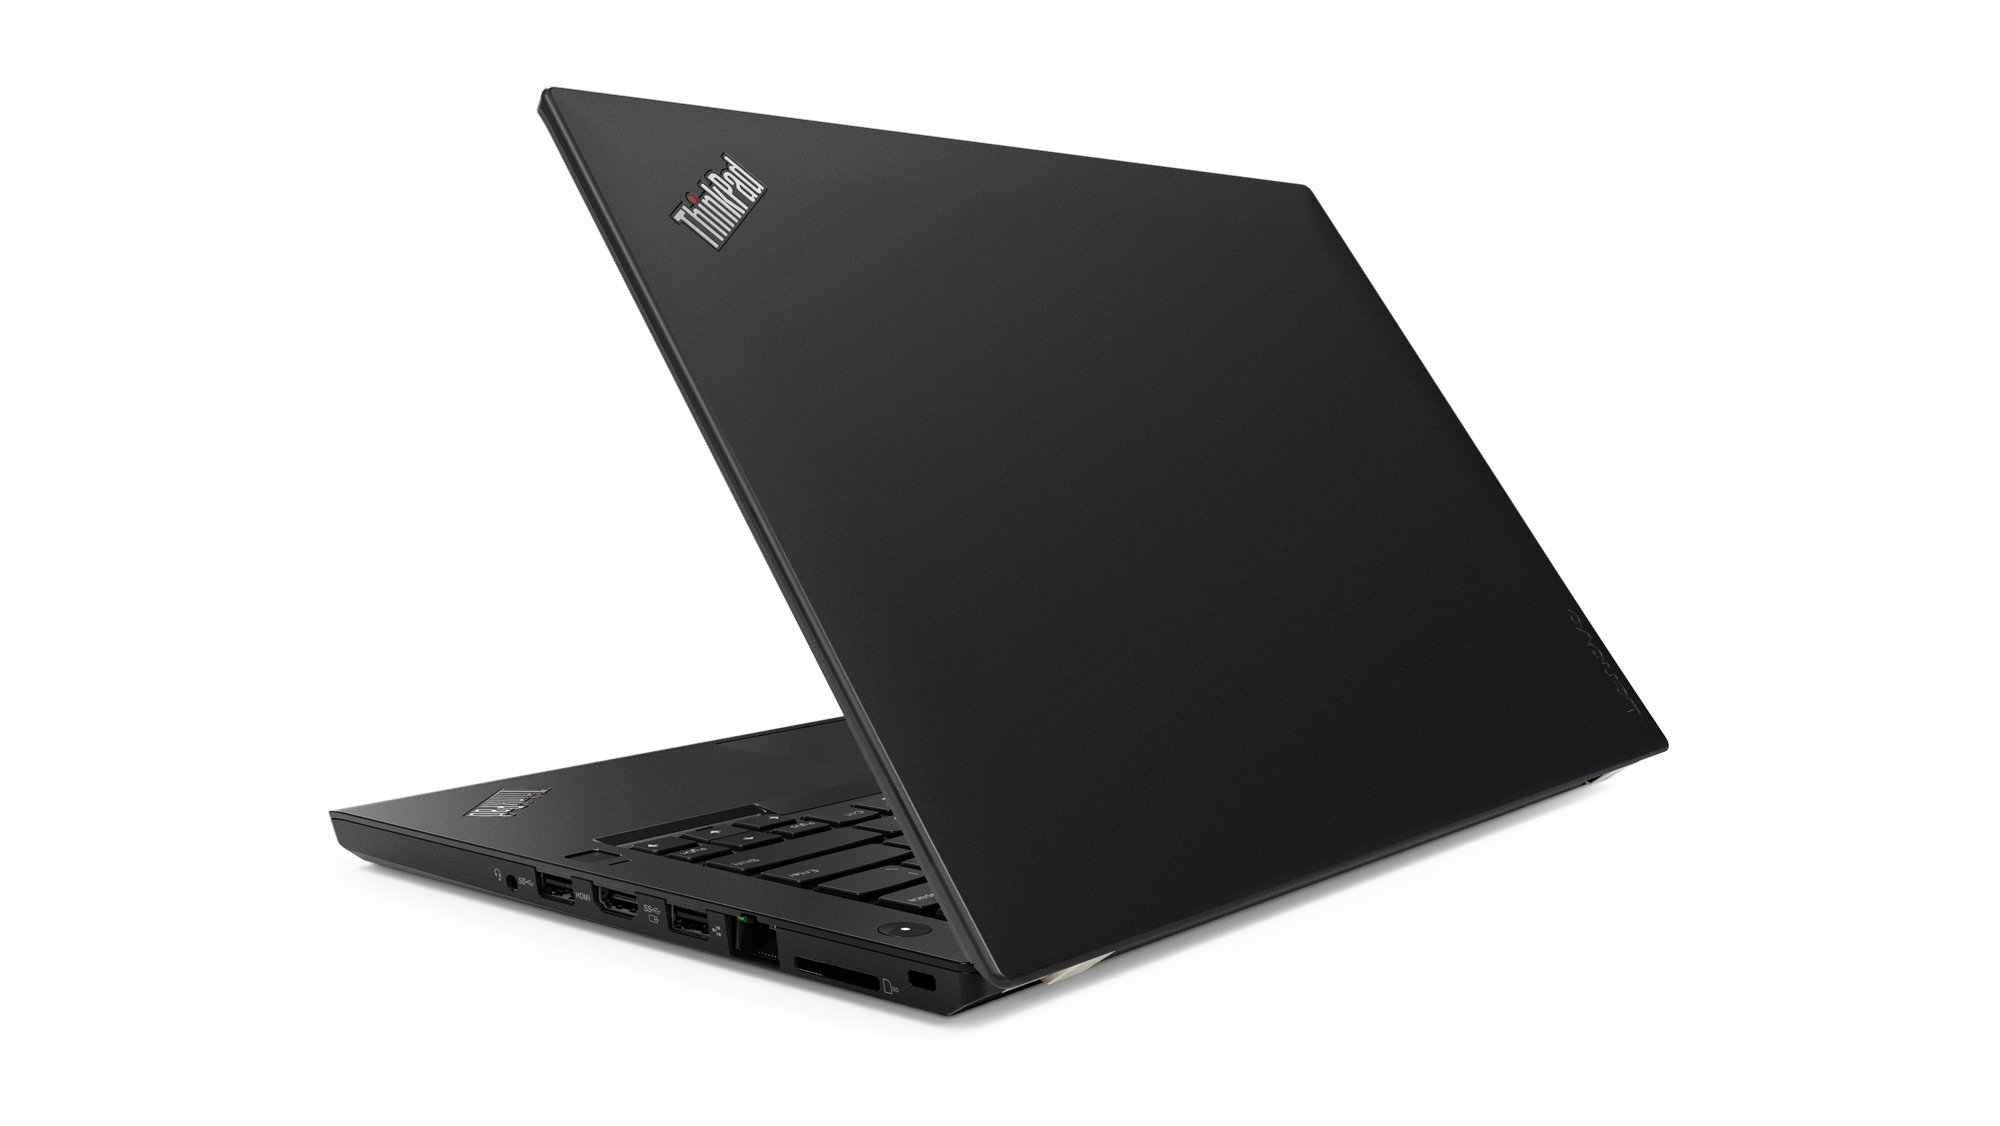 Lenovo ThinkPad X220i Conexant Audio Windows 8